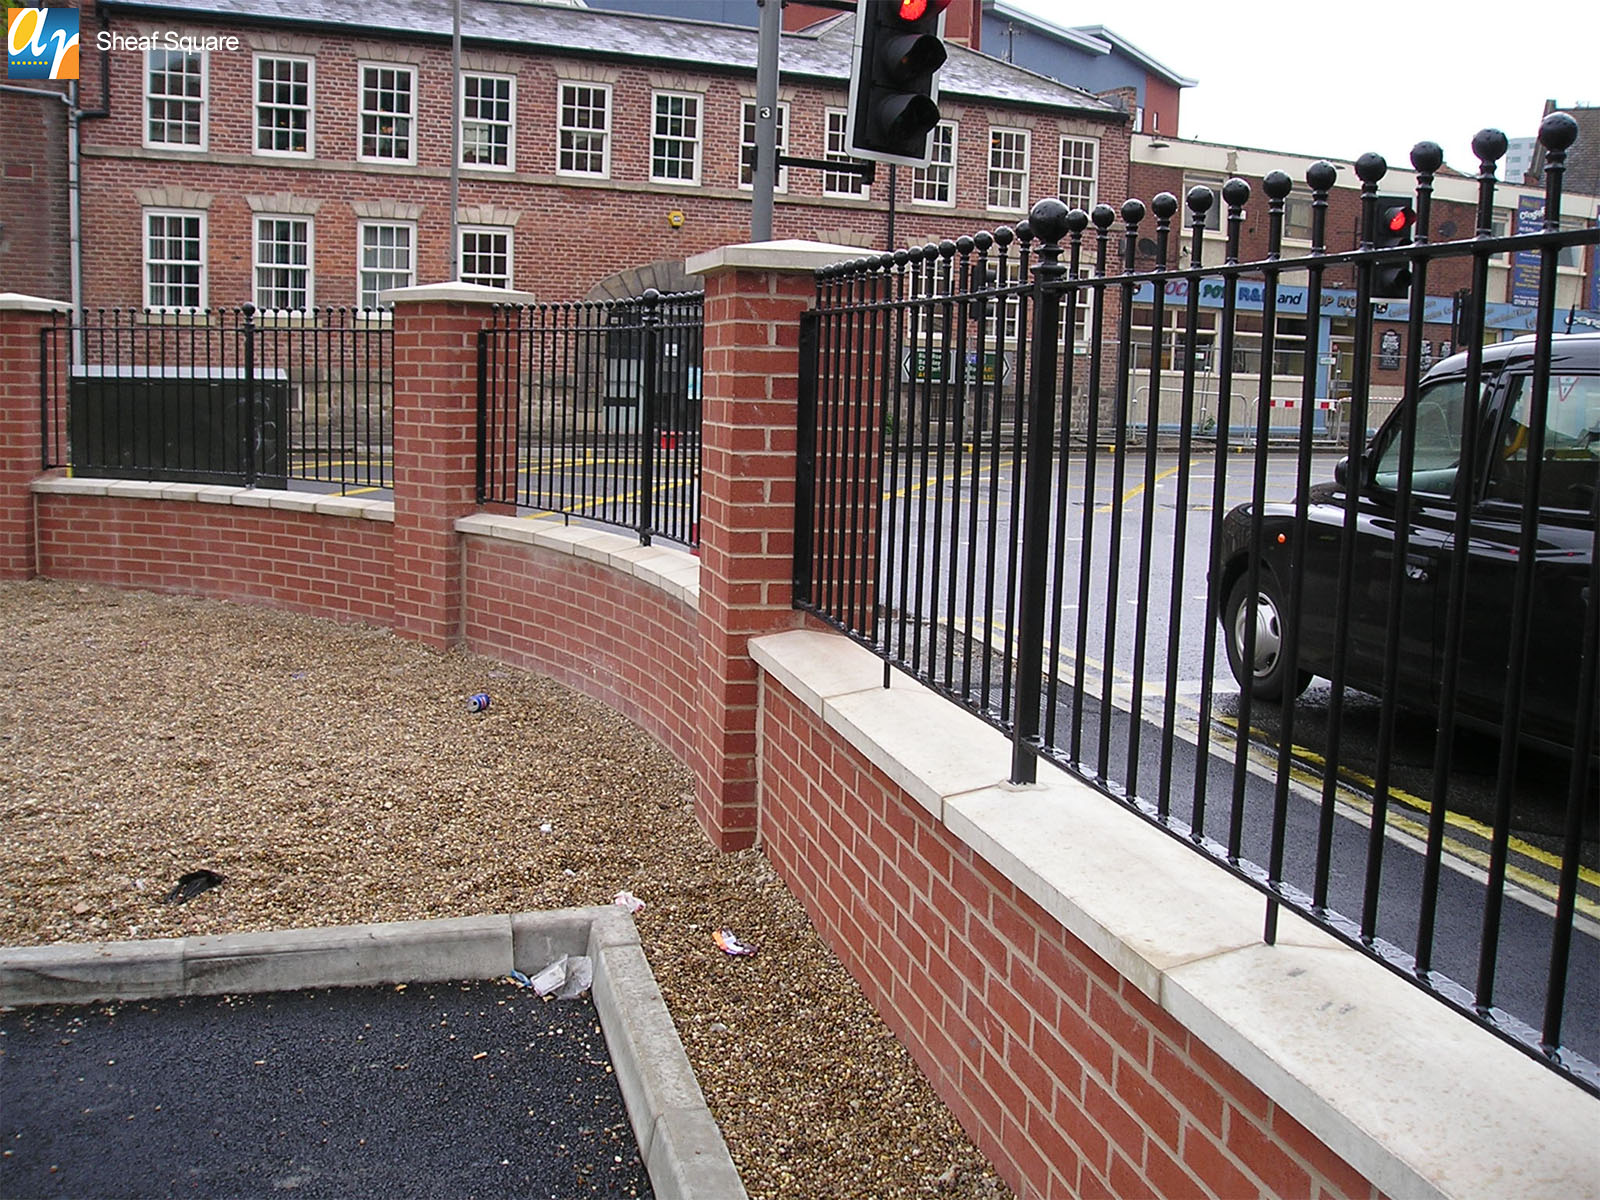 Sheaf Square humber vertical bar railings